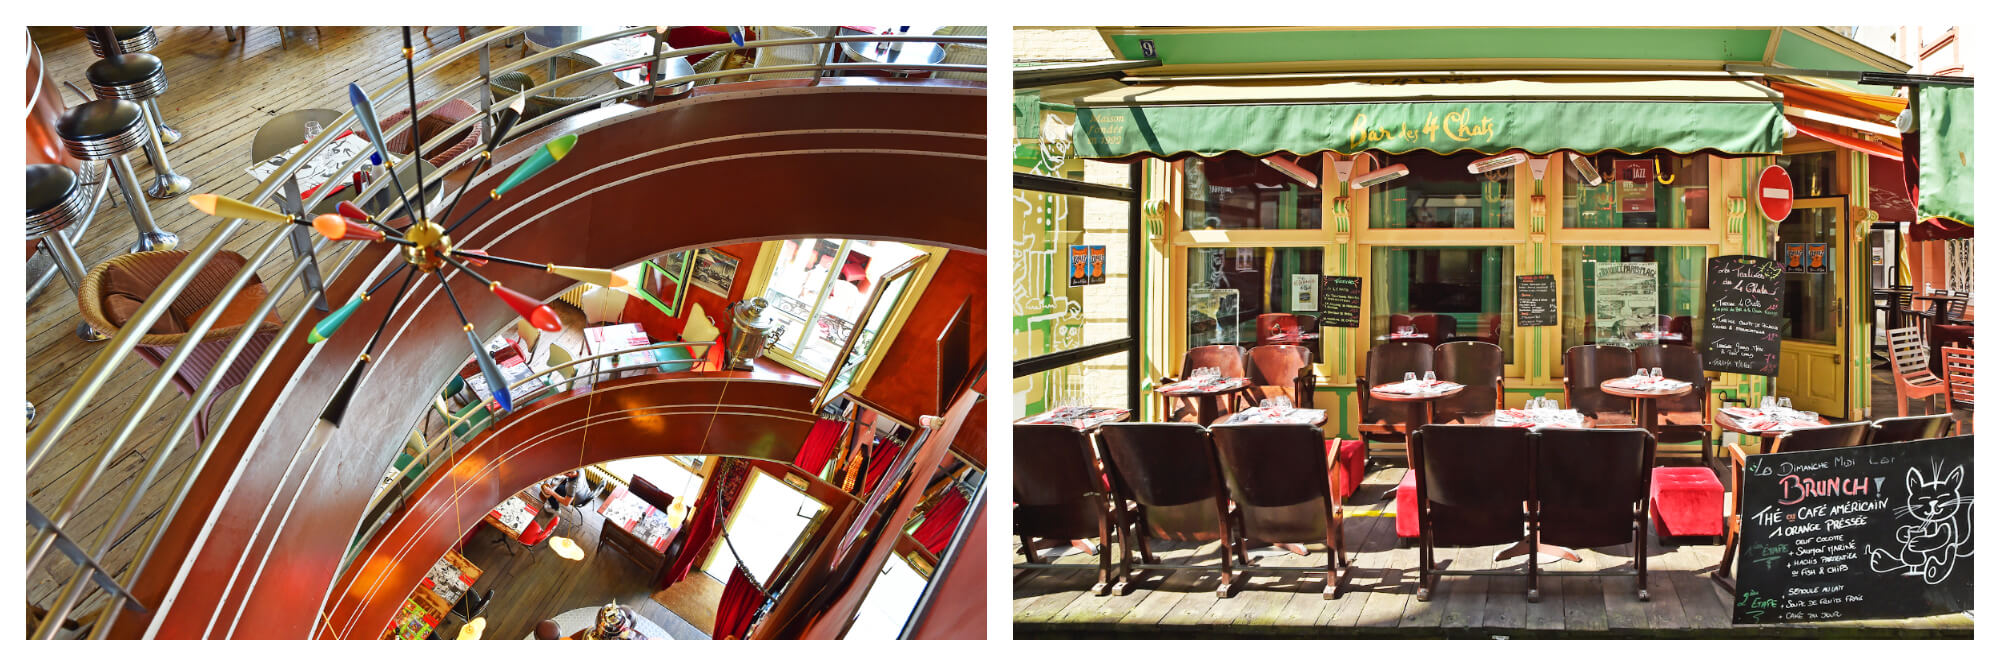 On left: The fun interior of Les Quatre Chats, a quirky establishment in Trouville-sur-Mer, is a bar and restaurant known for burgers and brunch with an eclectic atmosphere. On right: Visitors can enjoy drinks on the terrace of Les Quatre Chats, a quirky bar and restaurant in Trouveille-sur-Mer.